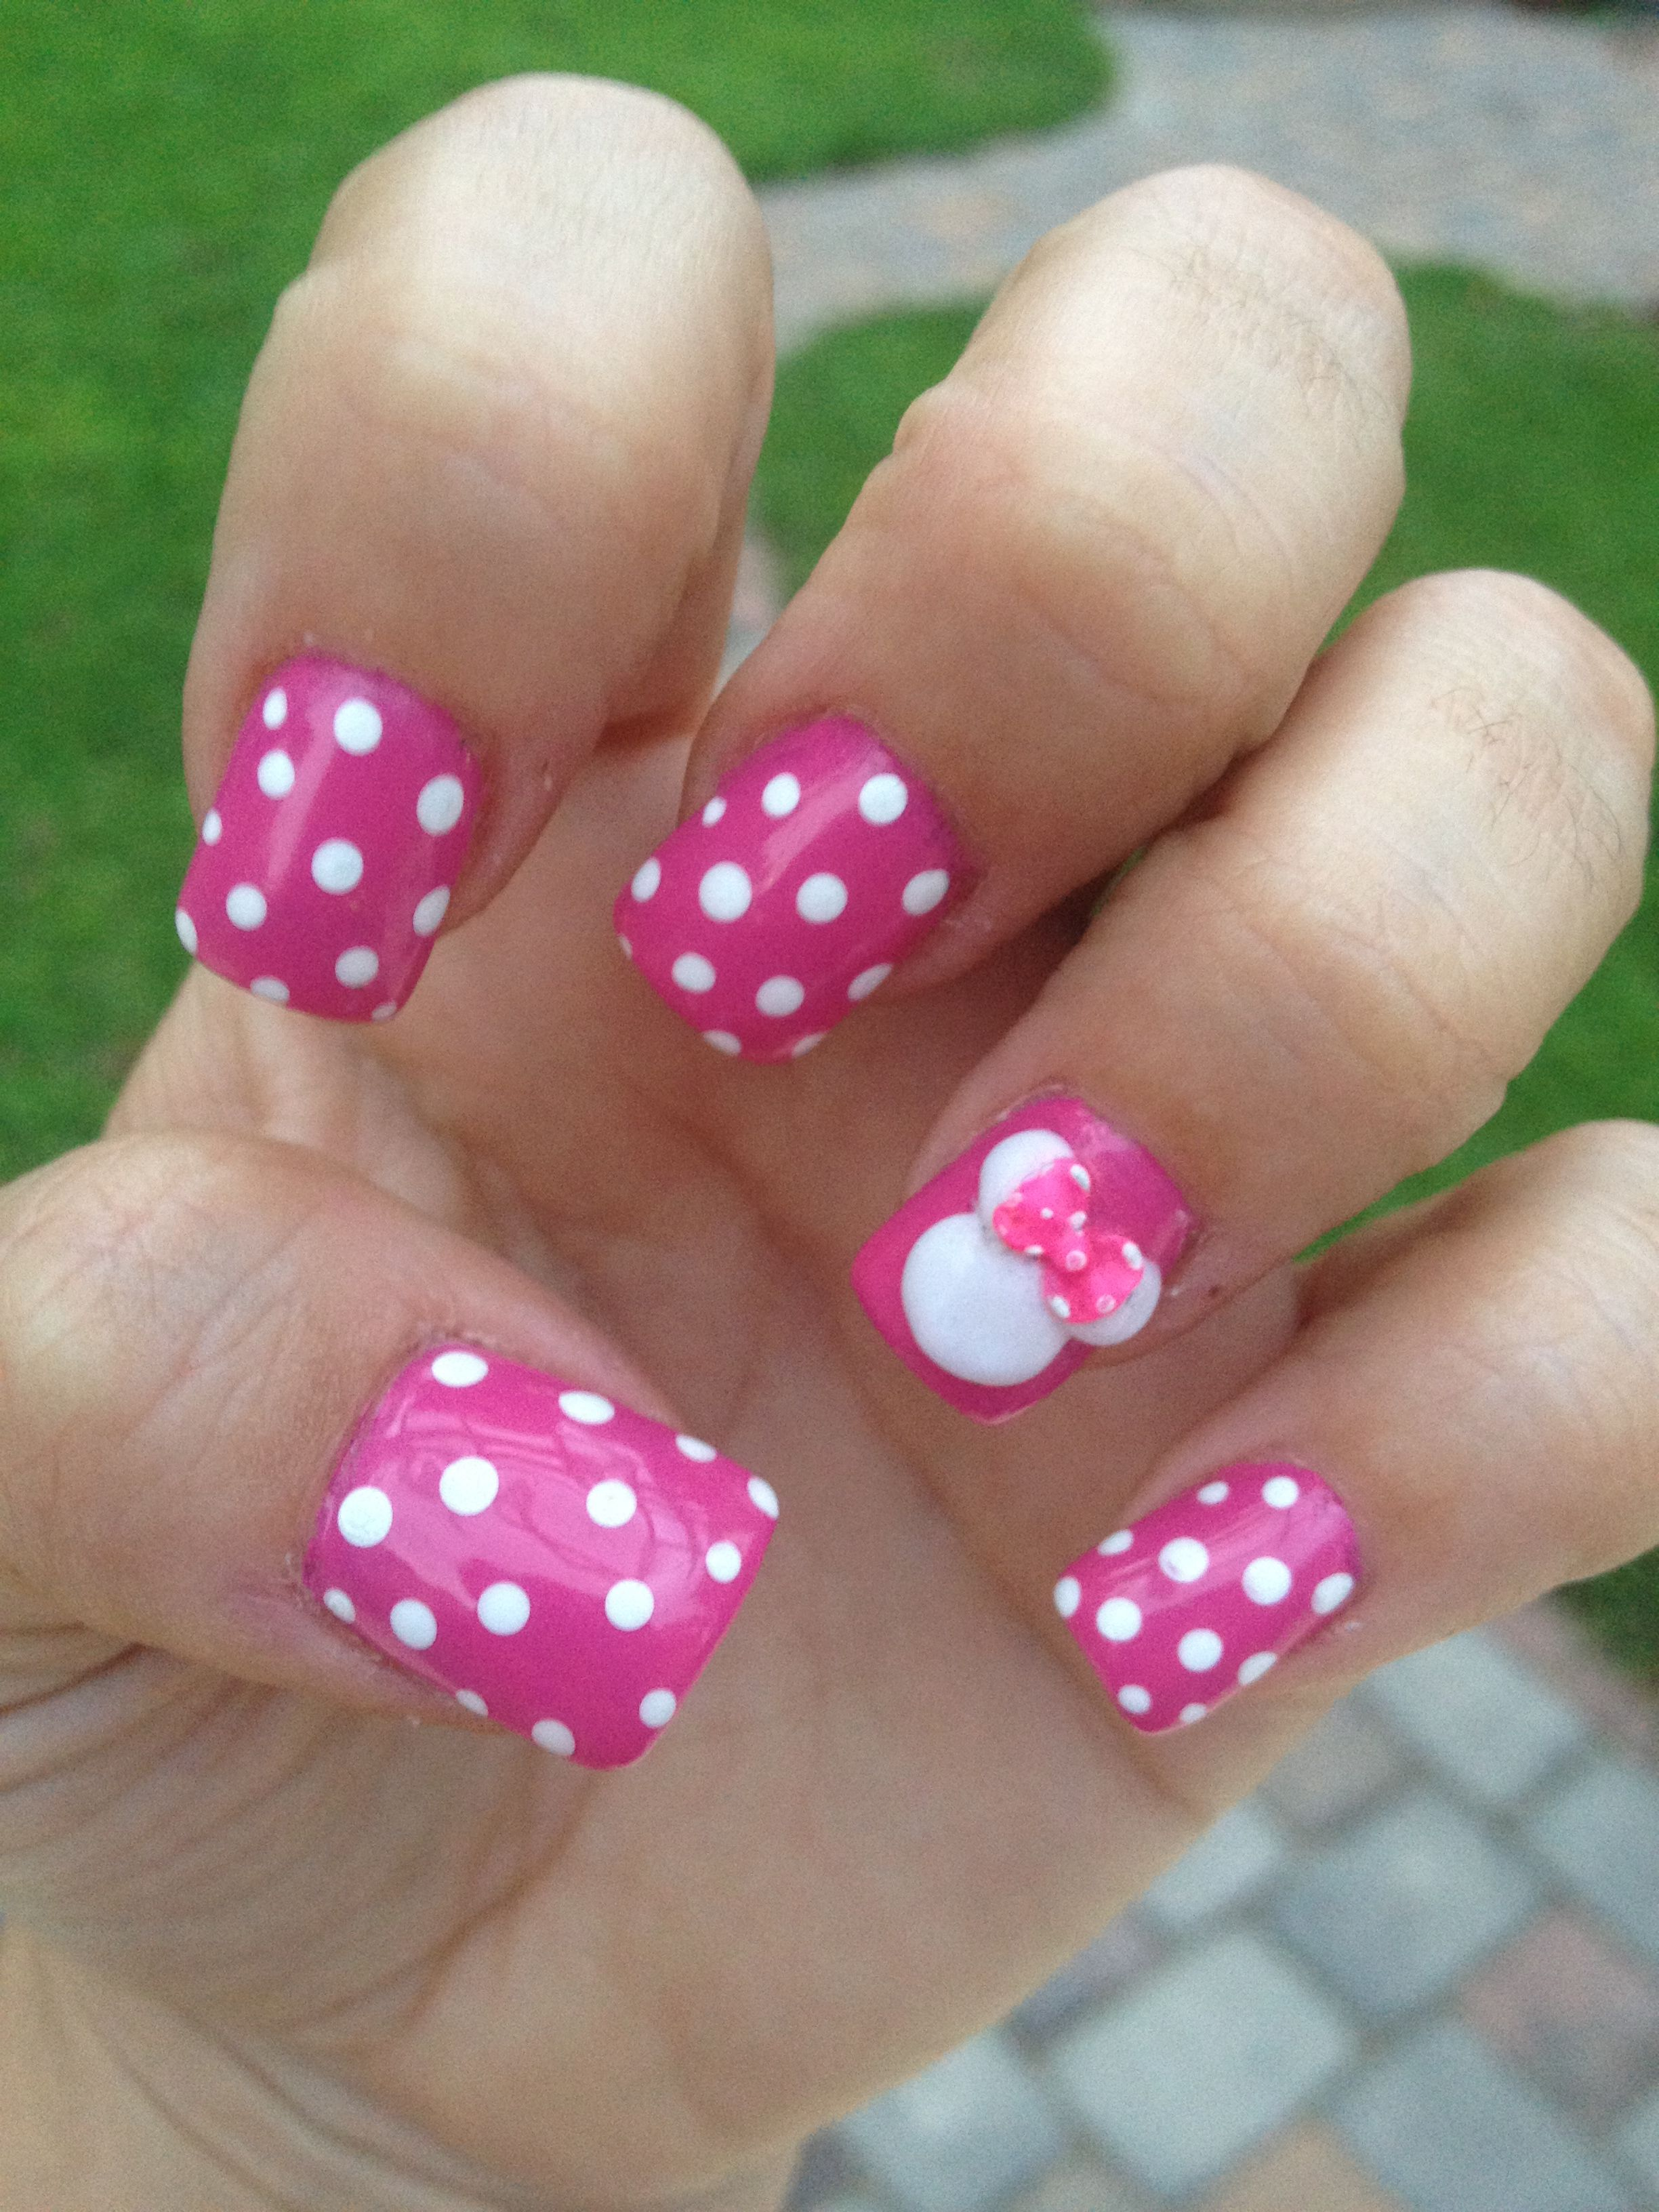 Minnie Mouse Nails Pink Nails With White Polka Dots And On Ring Finger A White Mickey Head With Or With Minnie Mouse Nails Pink Nail Art Designs Disney Nails